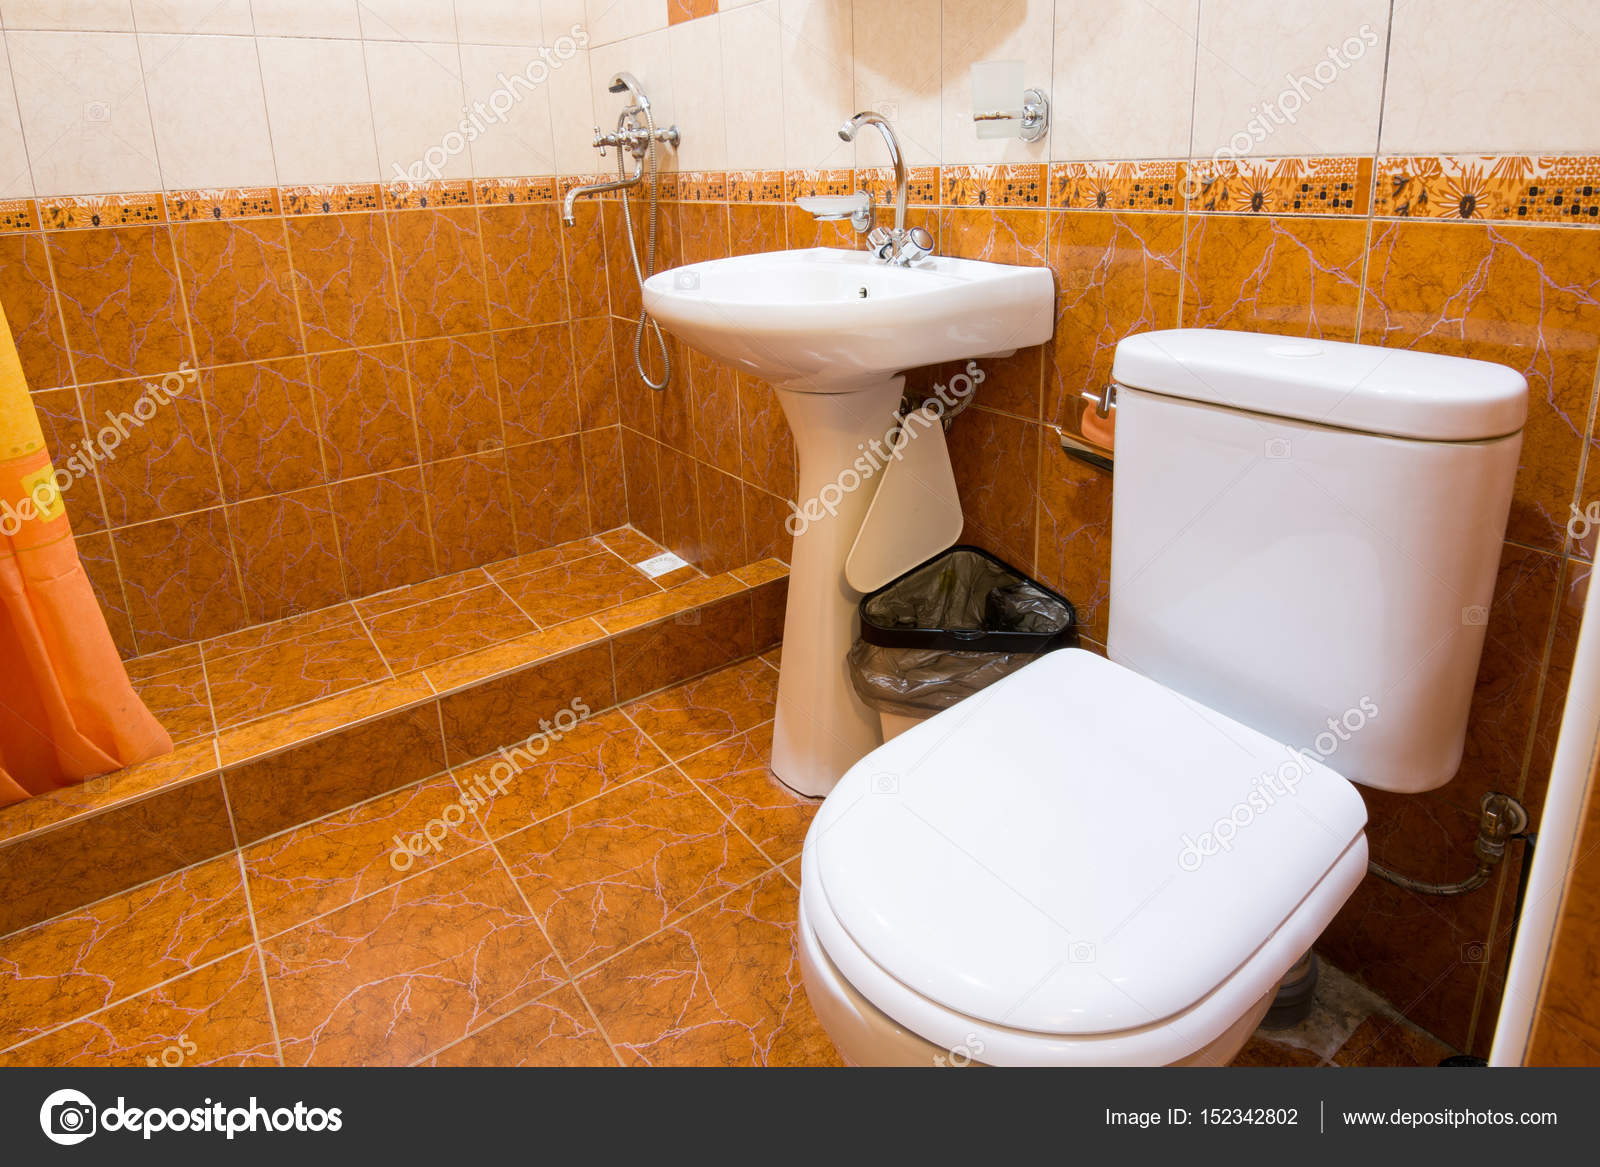 Bathroom Combined With Toilet In The Hotel, Shower, Sink And Toilet U2014 Photo  By Madhourses